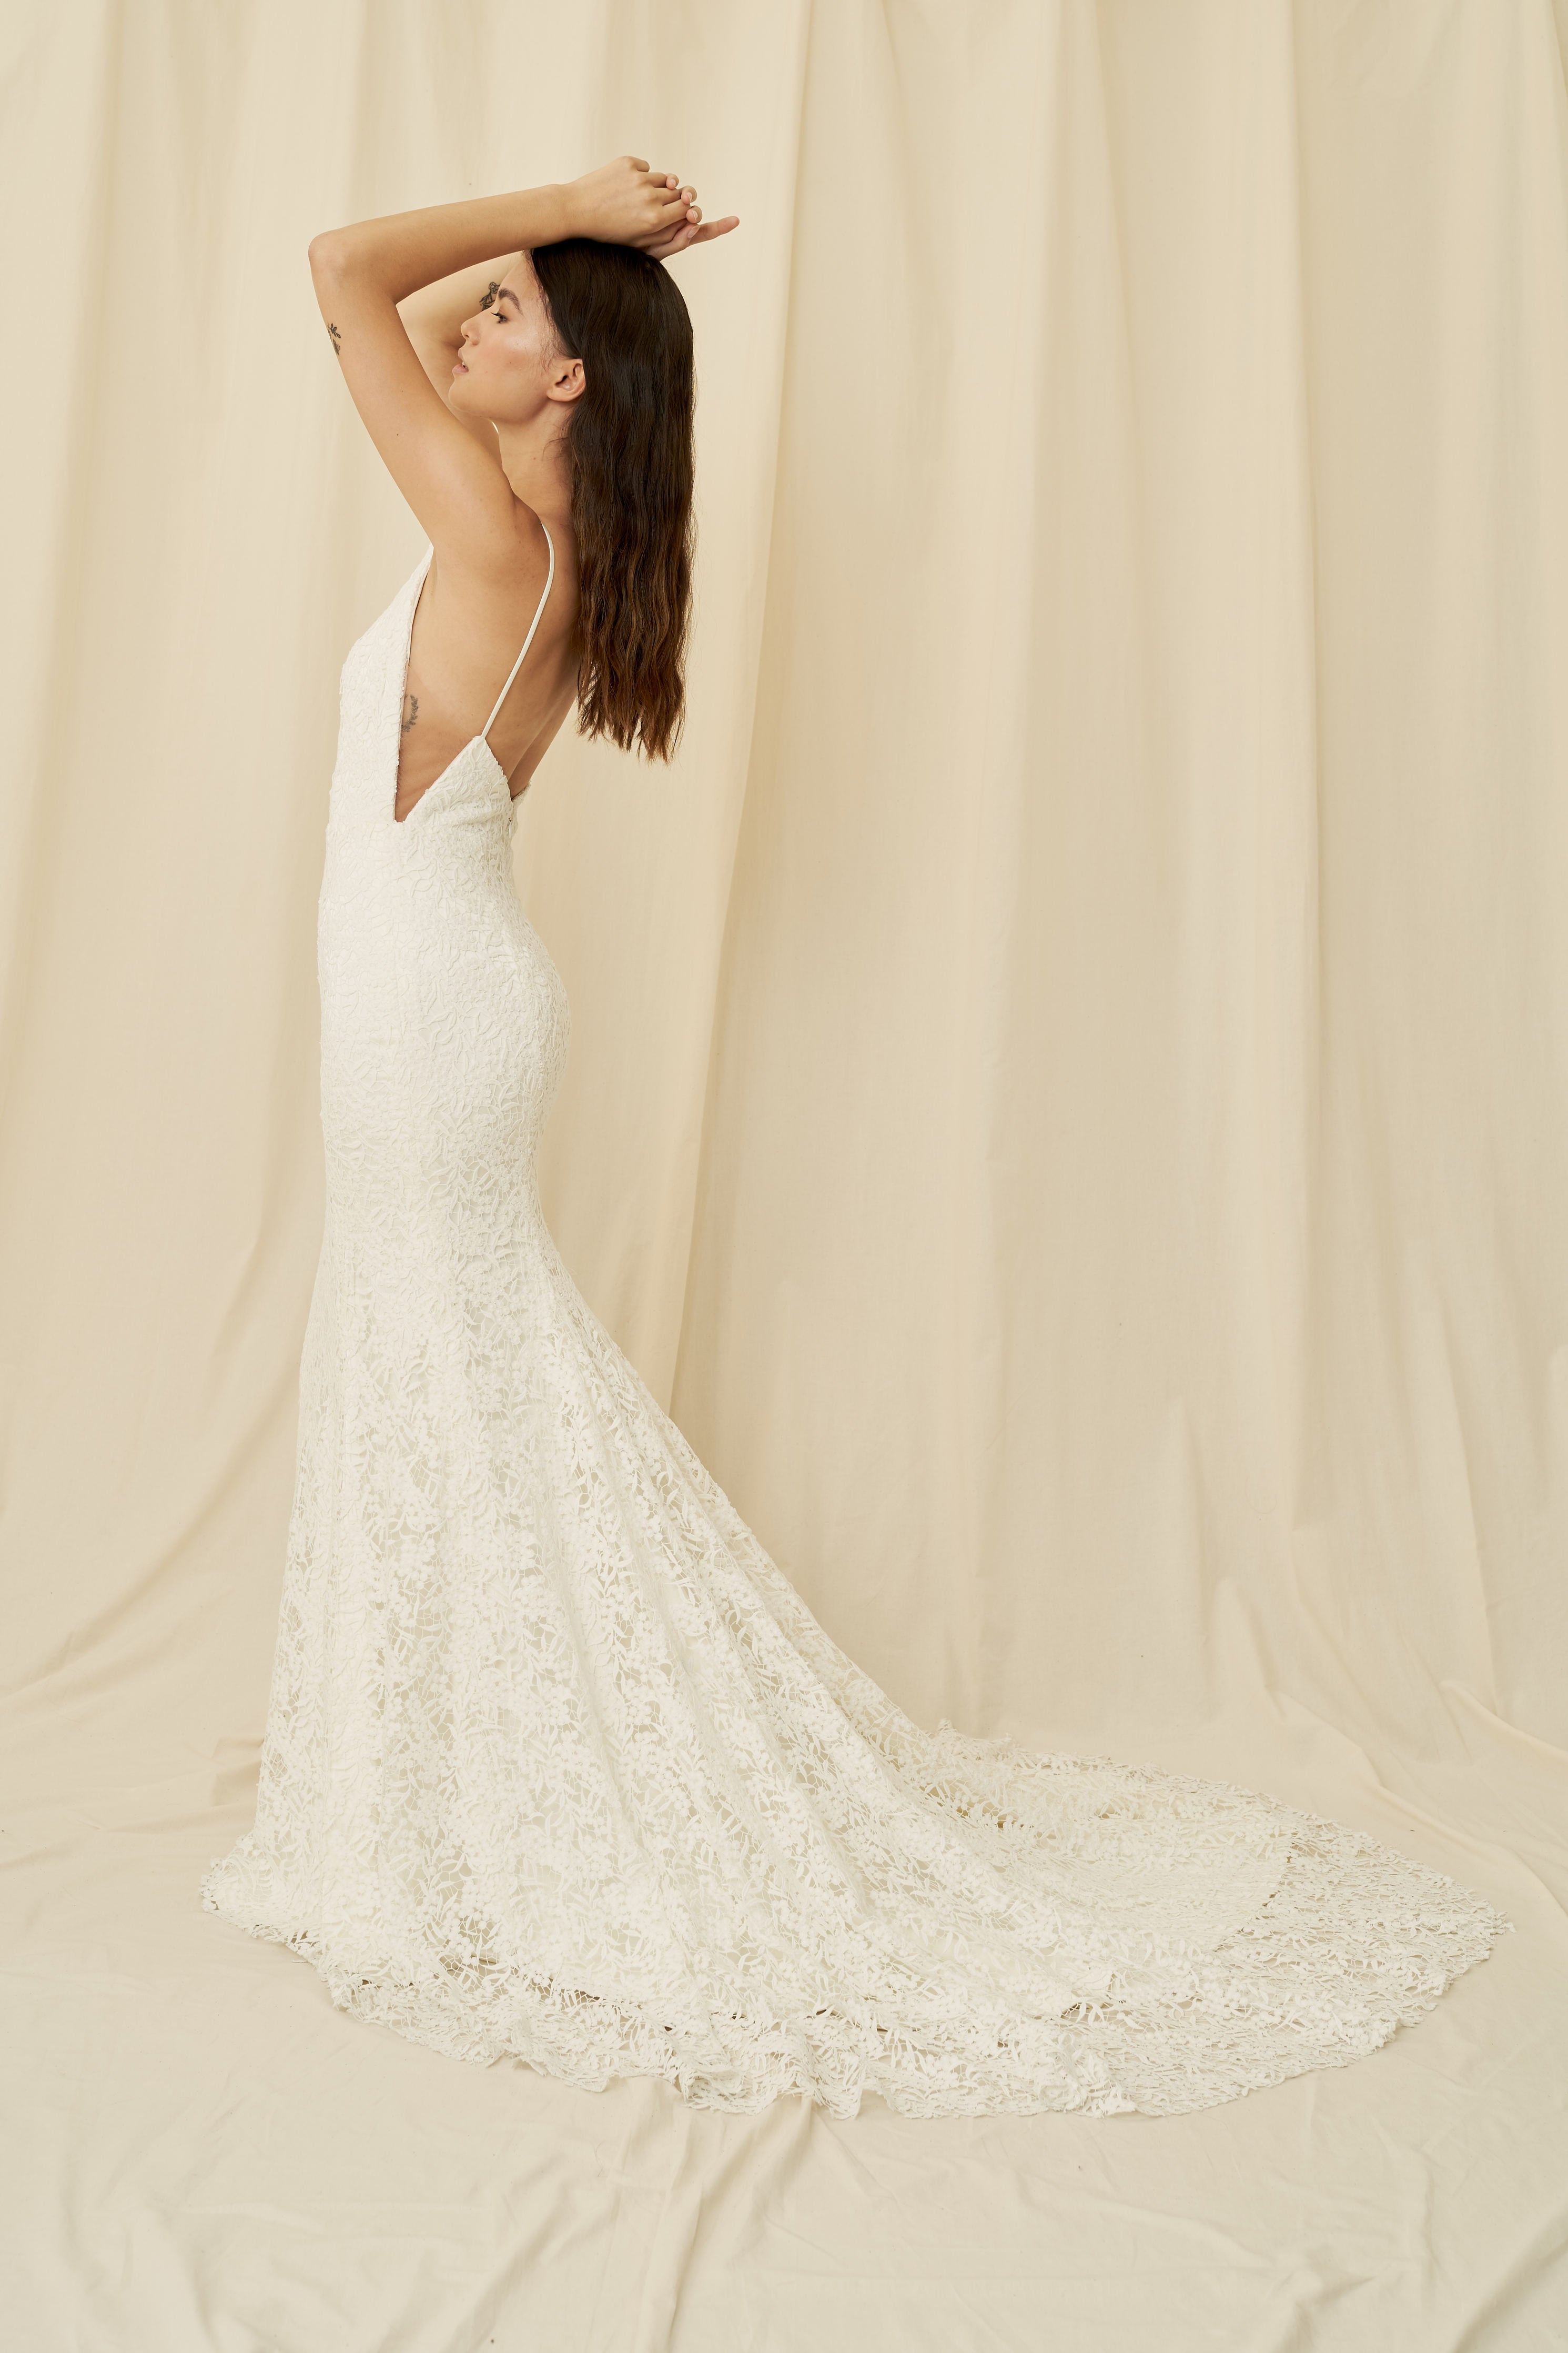 A high-neck wedding dress with all-over botanical lace and a long train